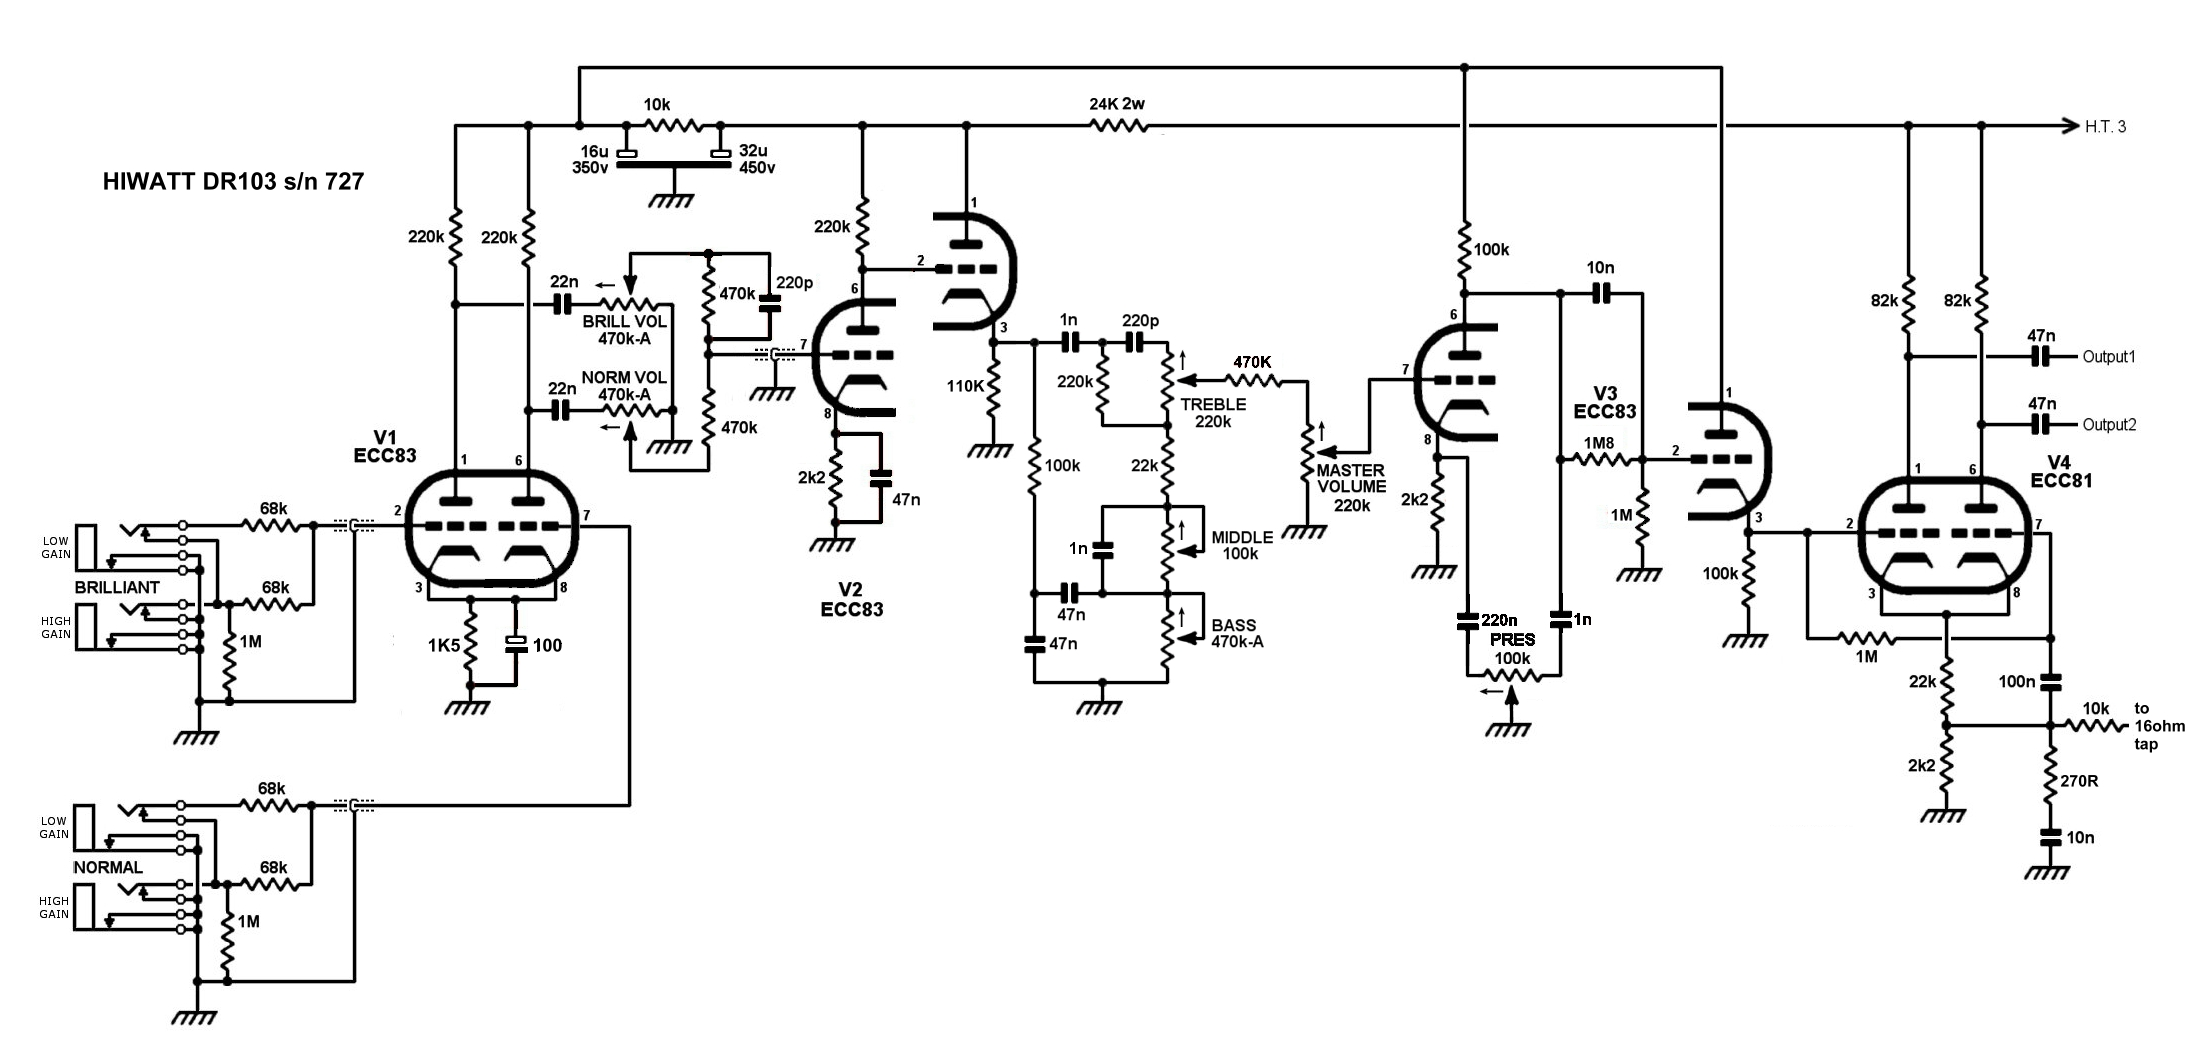 Fat Shark Camera Wiring Diagram likewise Controller Area  work Can Mcp2515 For likewise Onkyo A 06 Service Manual furthermore Game Circuits likewise Tahoe Fuse Box Diagram Tahoe Automotive Wiring Diagrams Intended For Tahoe Fuse Box Diagram. on camera circuit board diagram